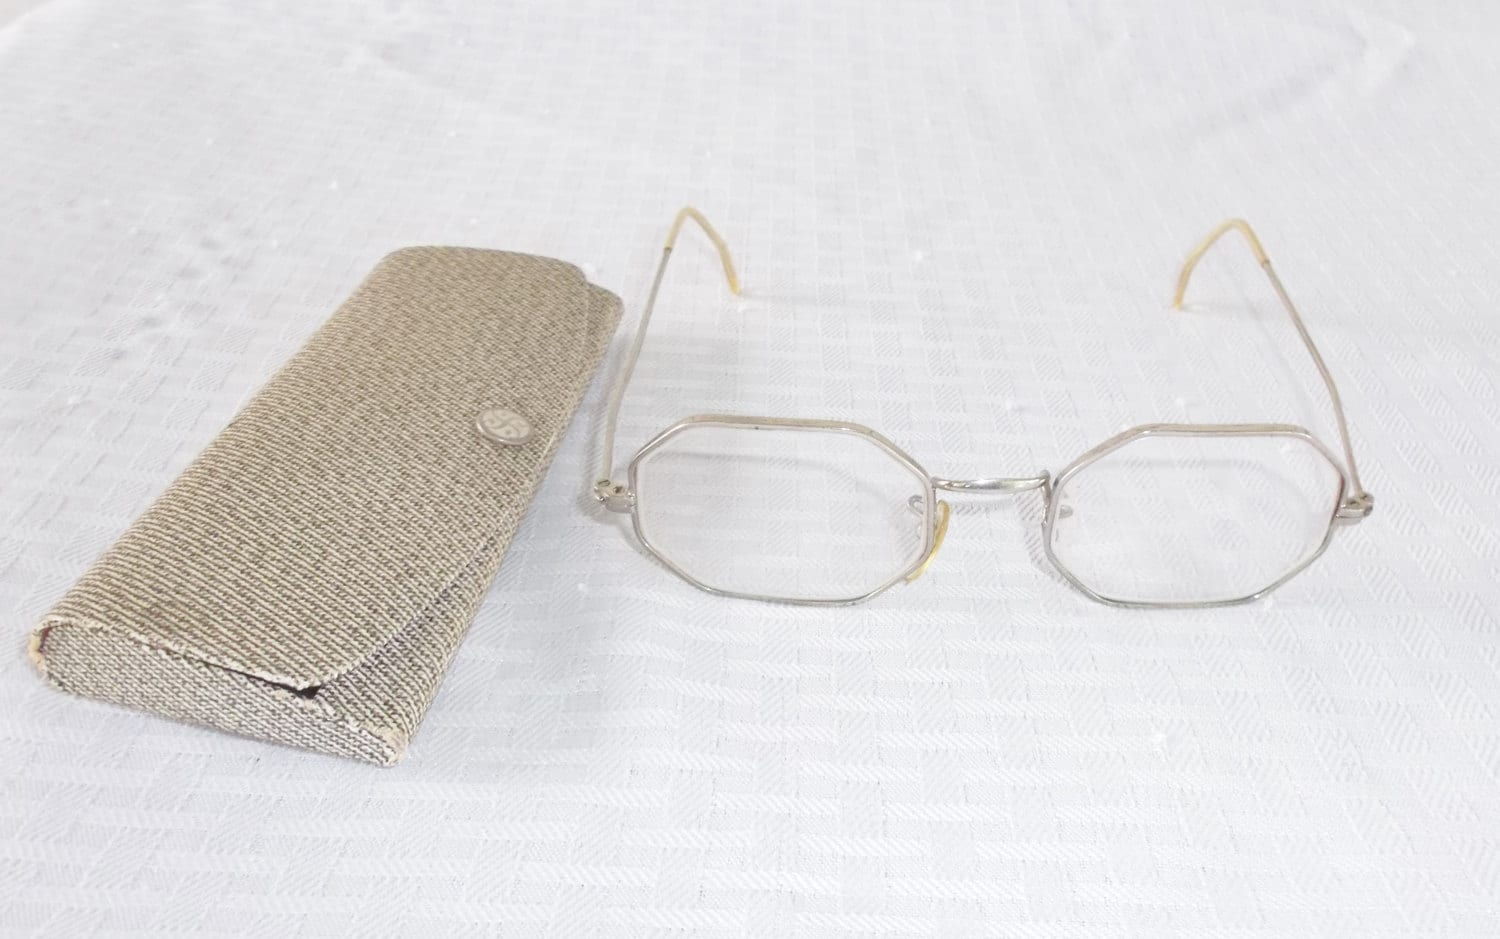 f244987db55 1930s Vintage Men  39 s Octagon Shaped Eyeglasses with Case